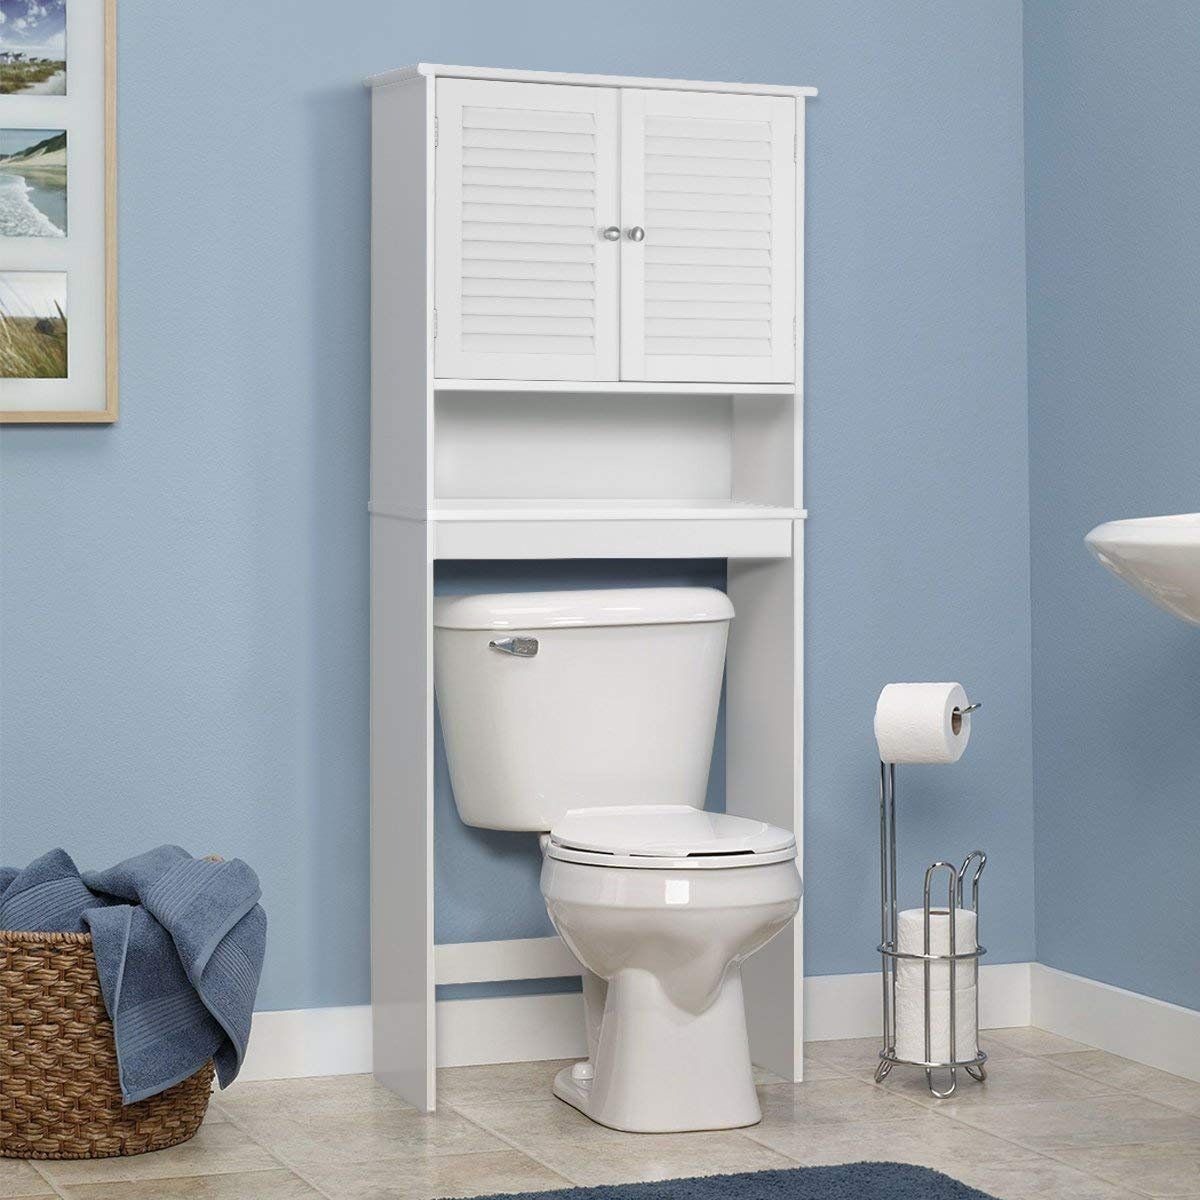 Giantex Bathroom Over-The-Toilet Space Saver Storage with Shelf and 2-Door Cabinet, White by Giantex